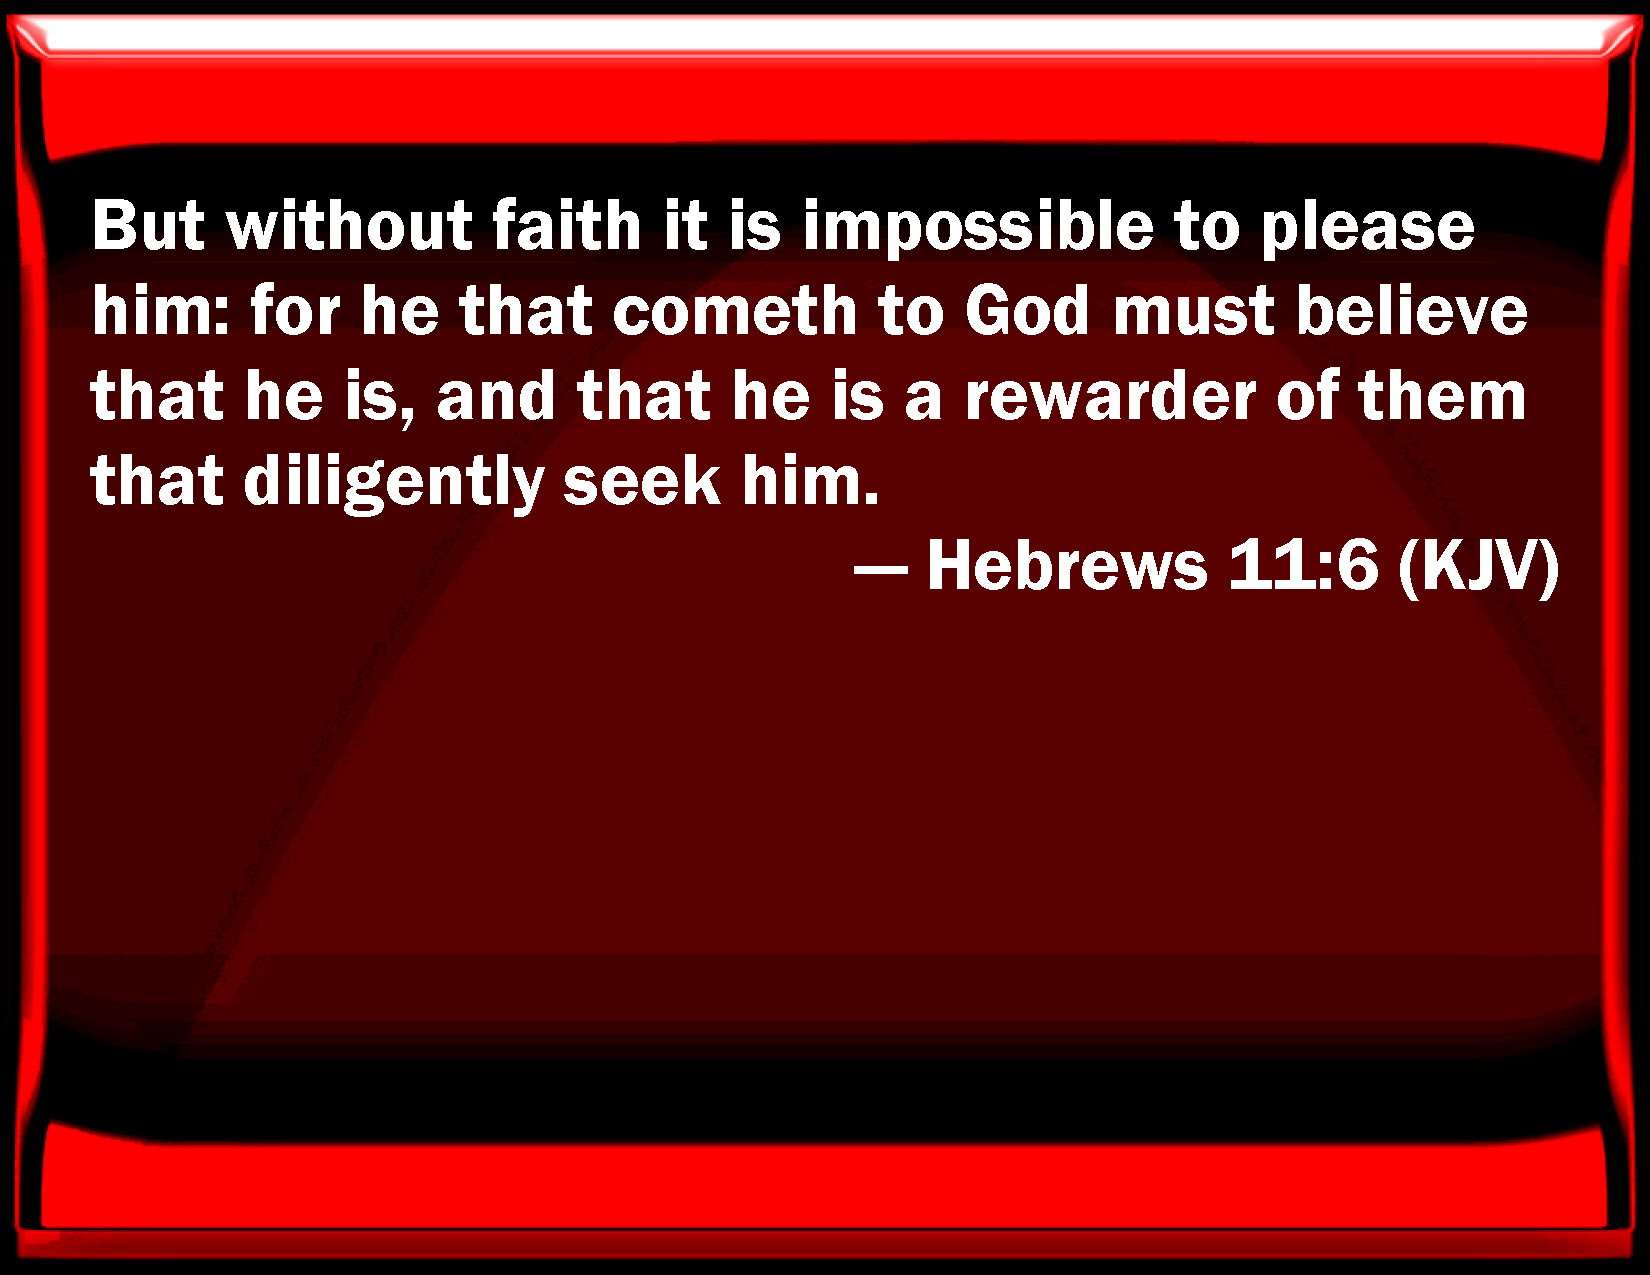 Hebrews 11 1 3 Pictures to Pin on Pinterest - PinsDaddy